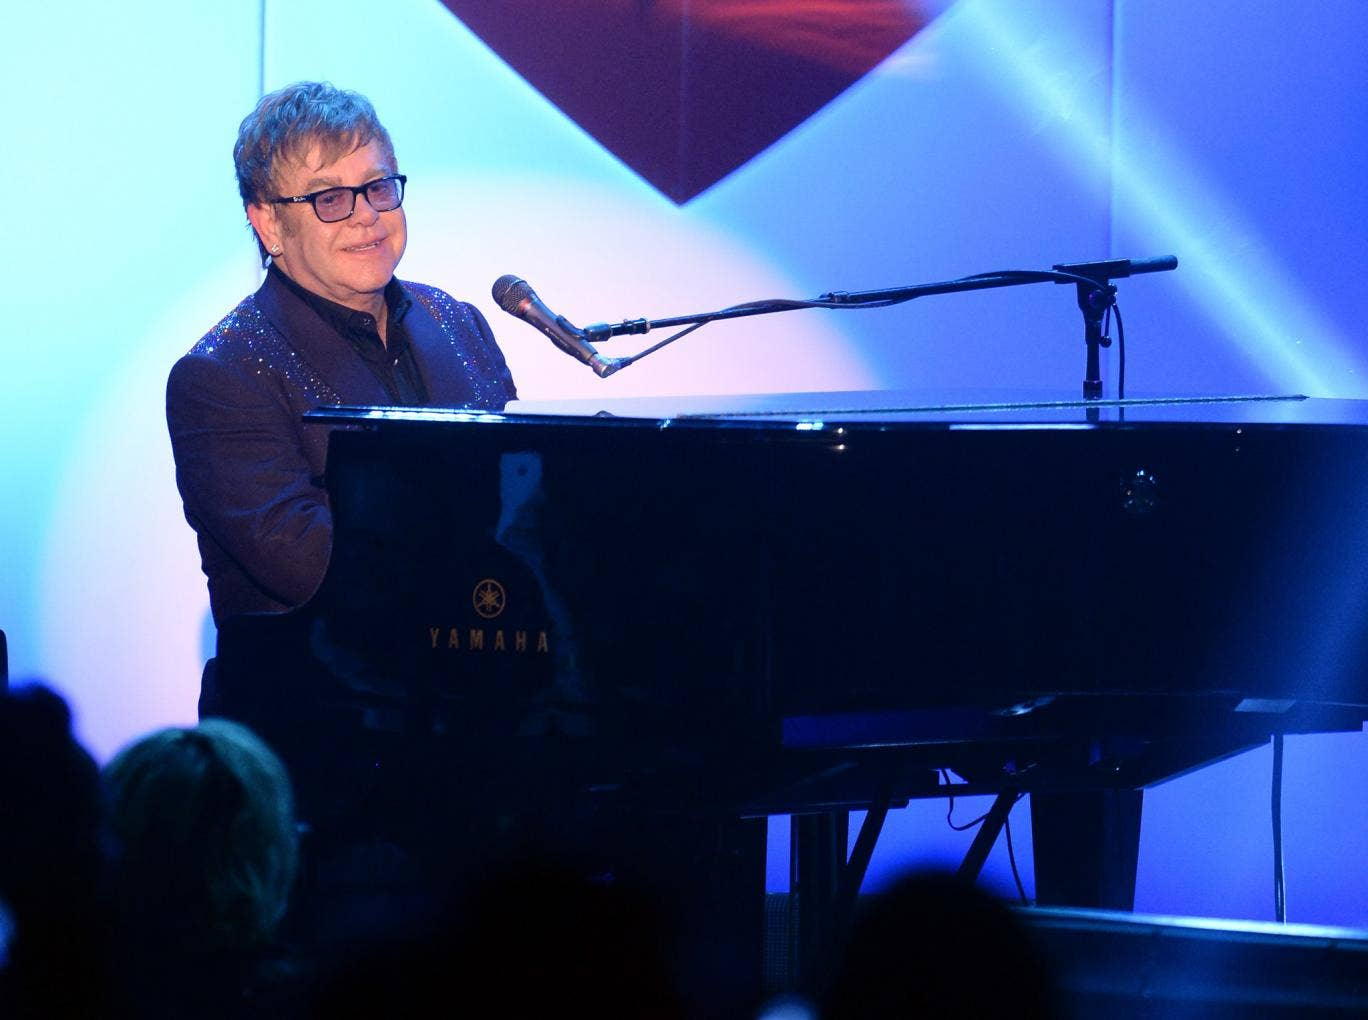 Elton John played on the Queens of the Stone Age's new record